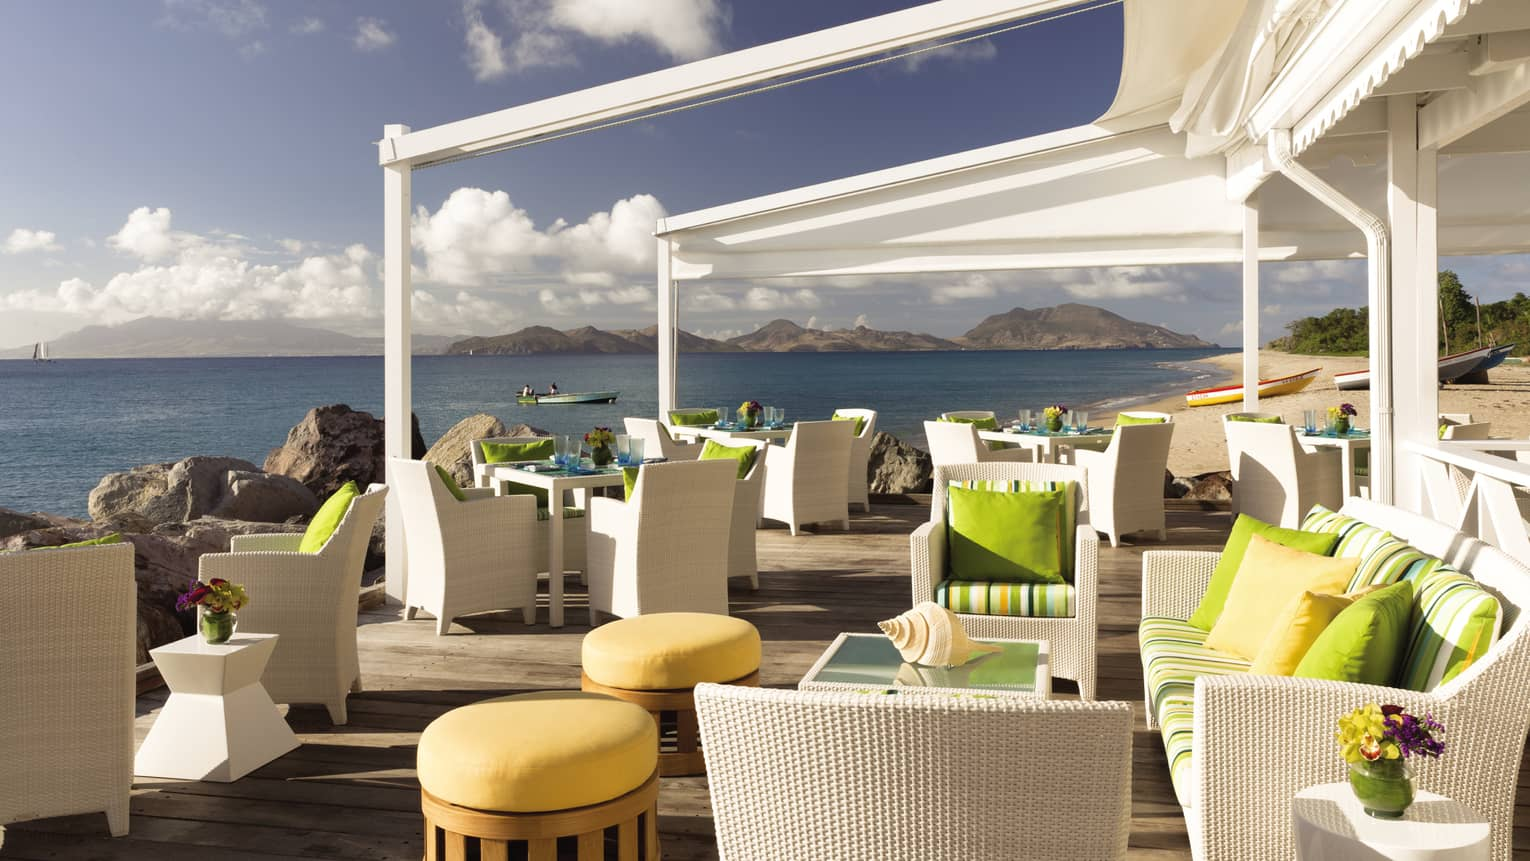 Mango restaurant patio white wicker furniture, yellow stools, deck over ocean